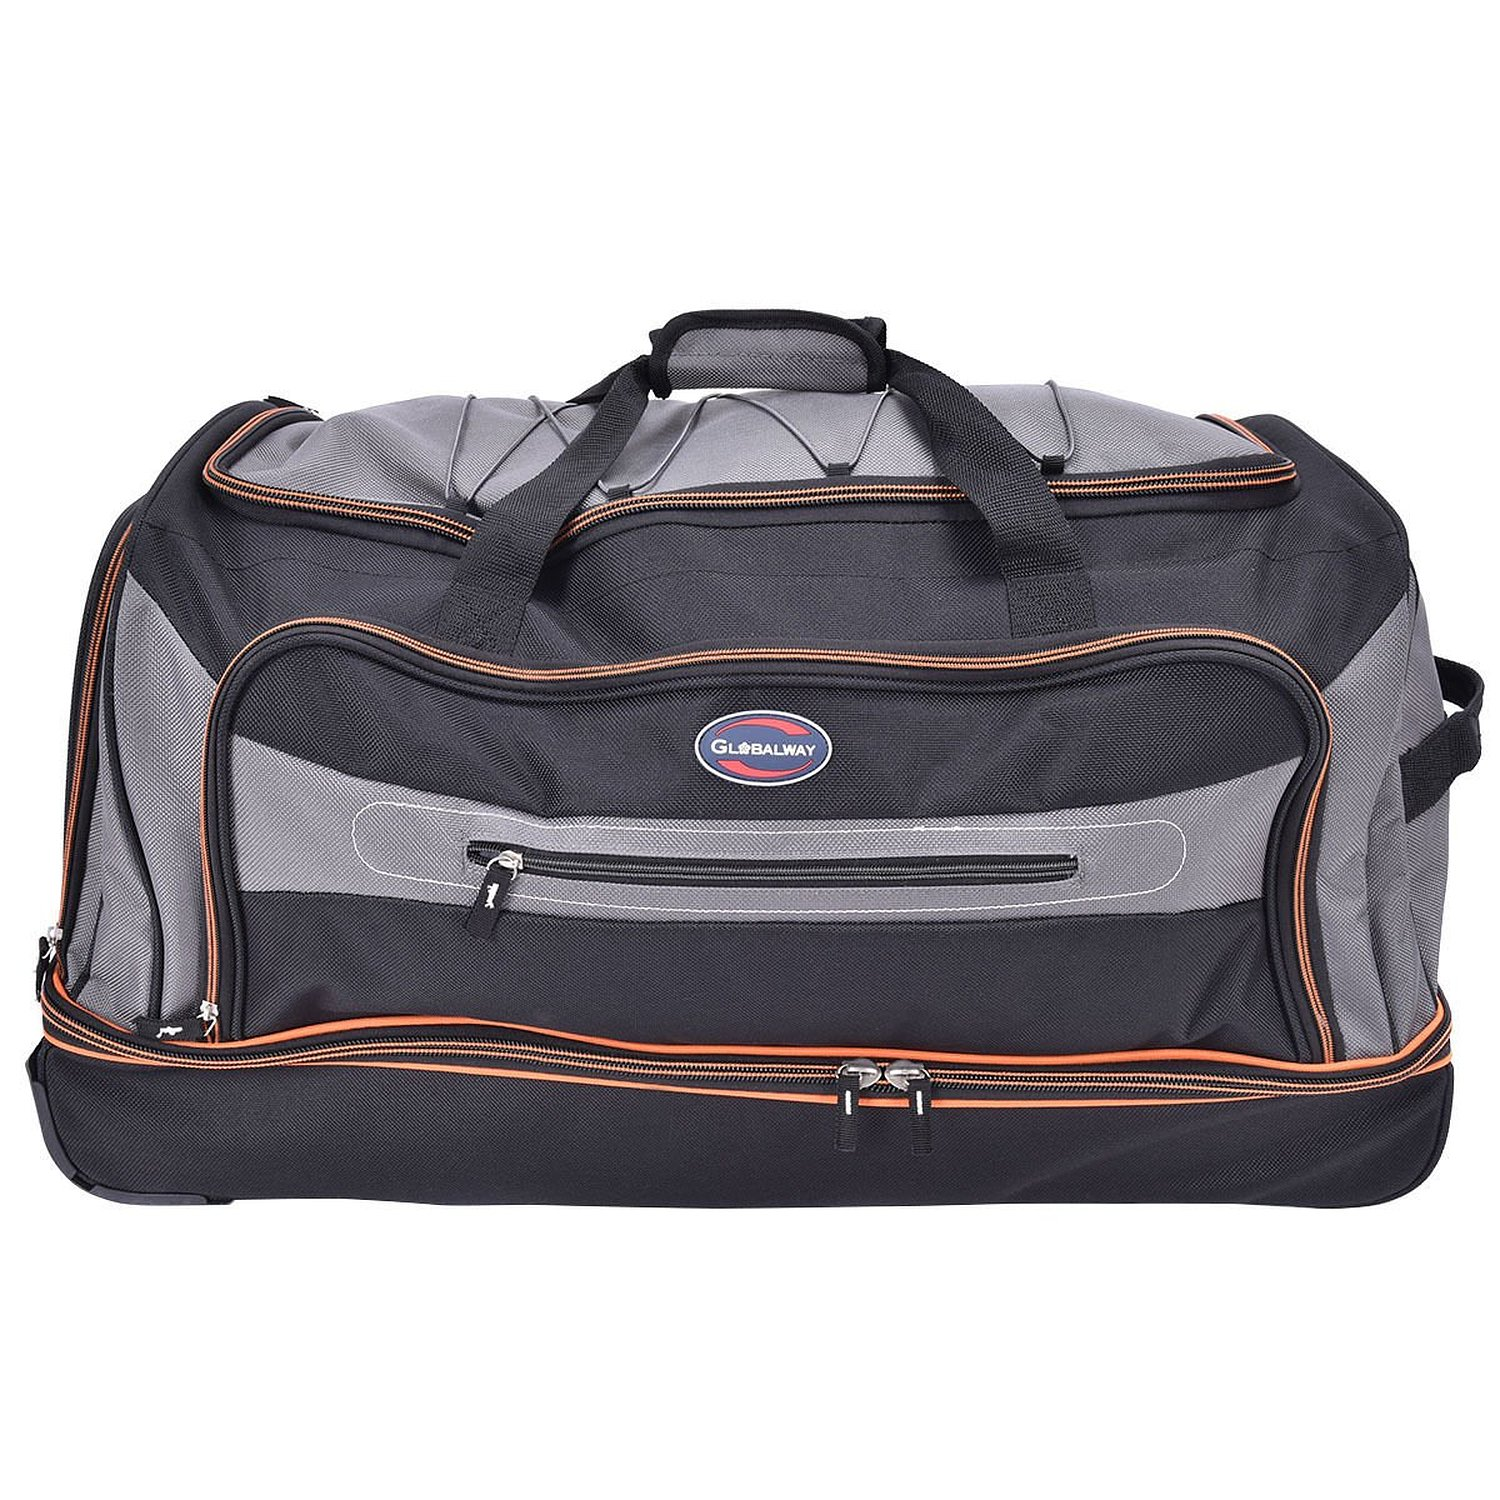 Tangkula 30 Drop Bottom Rolling Wheeled Duffel Bag Carry On Luggage Travel Suitcase